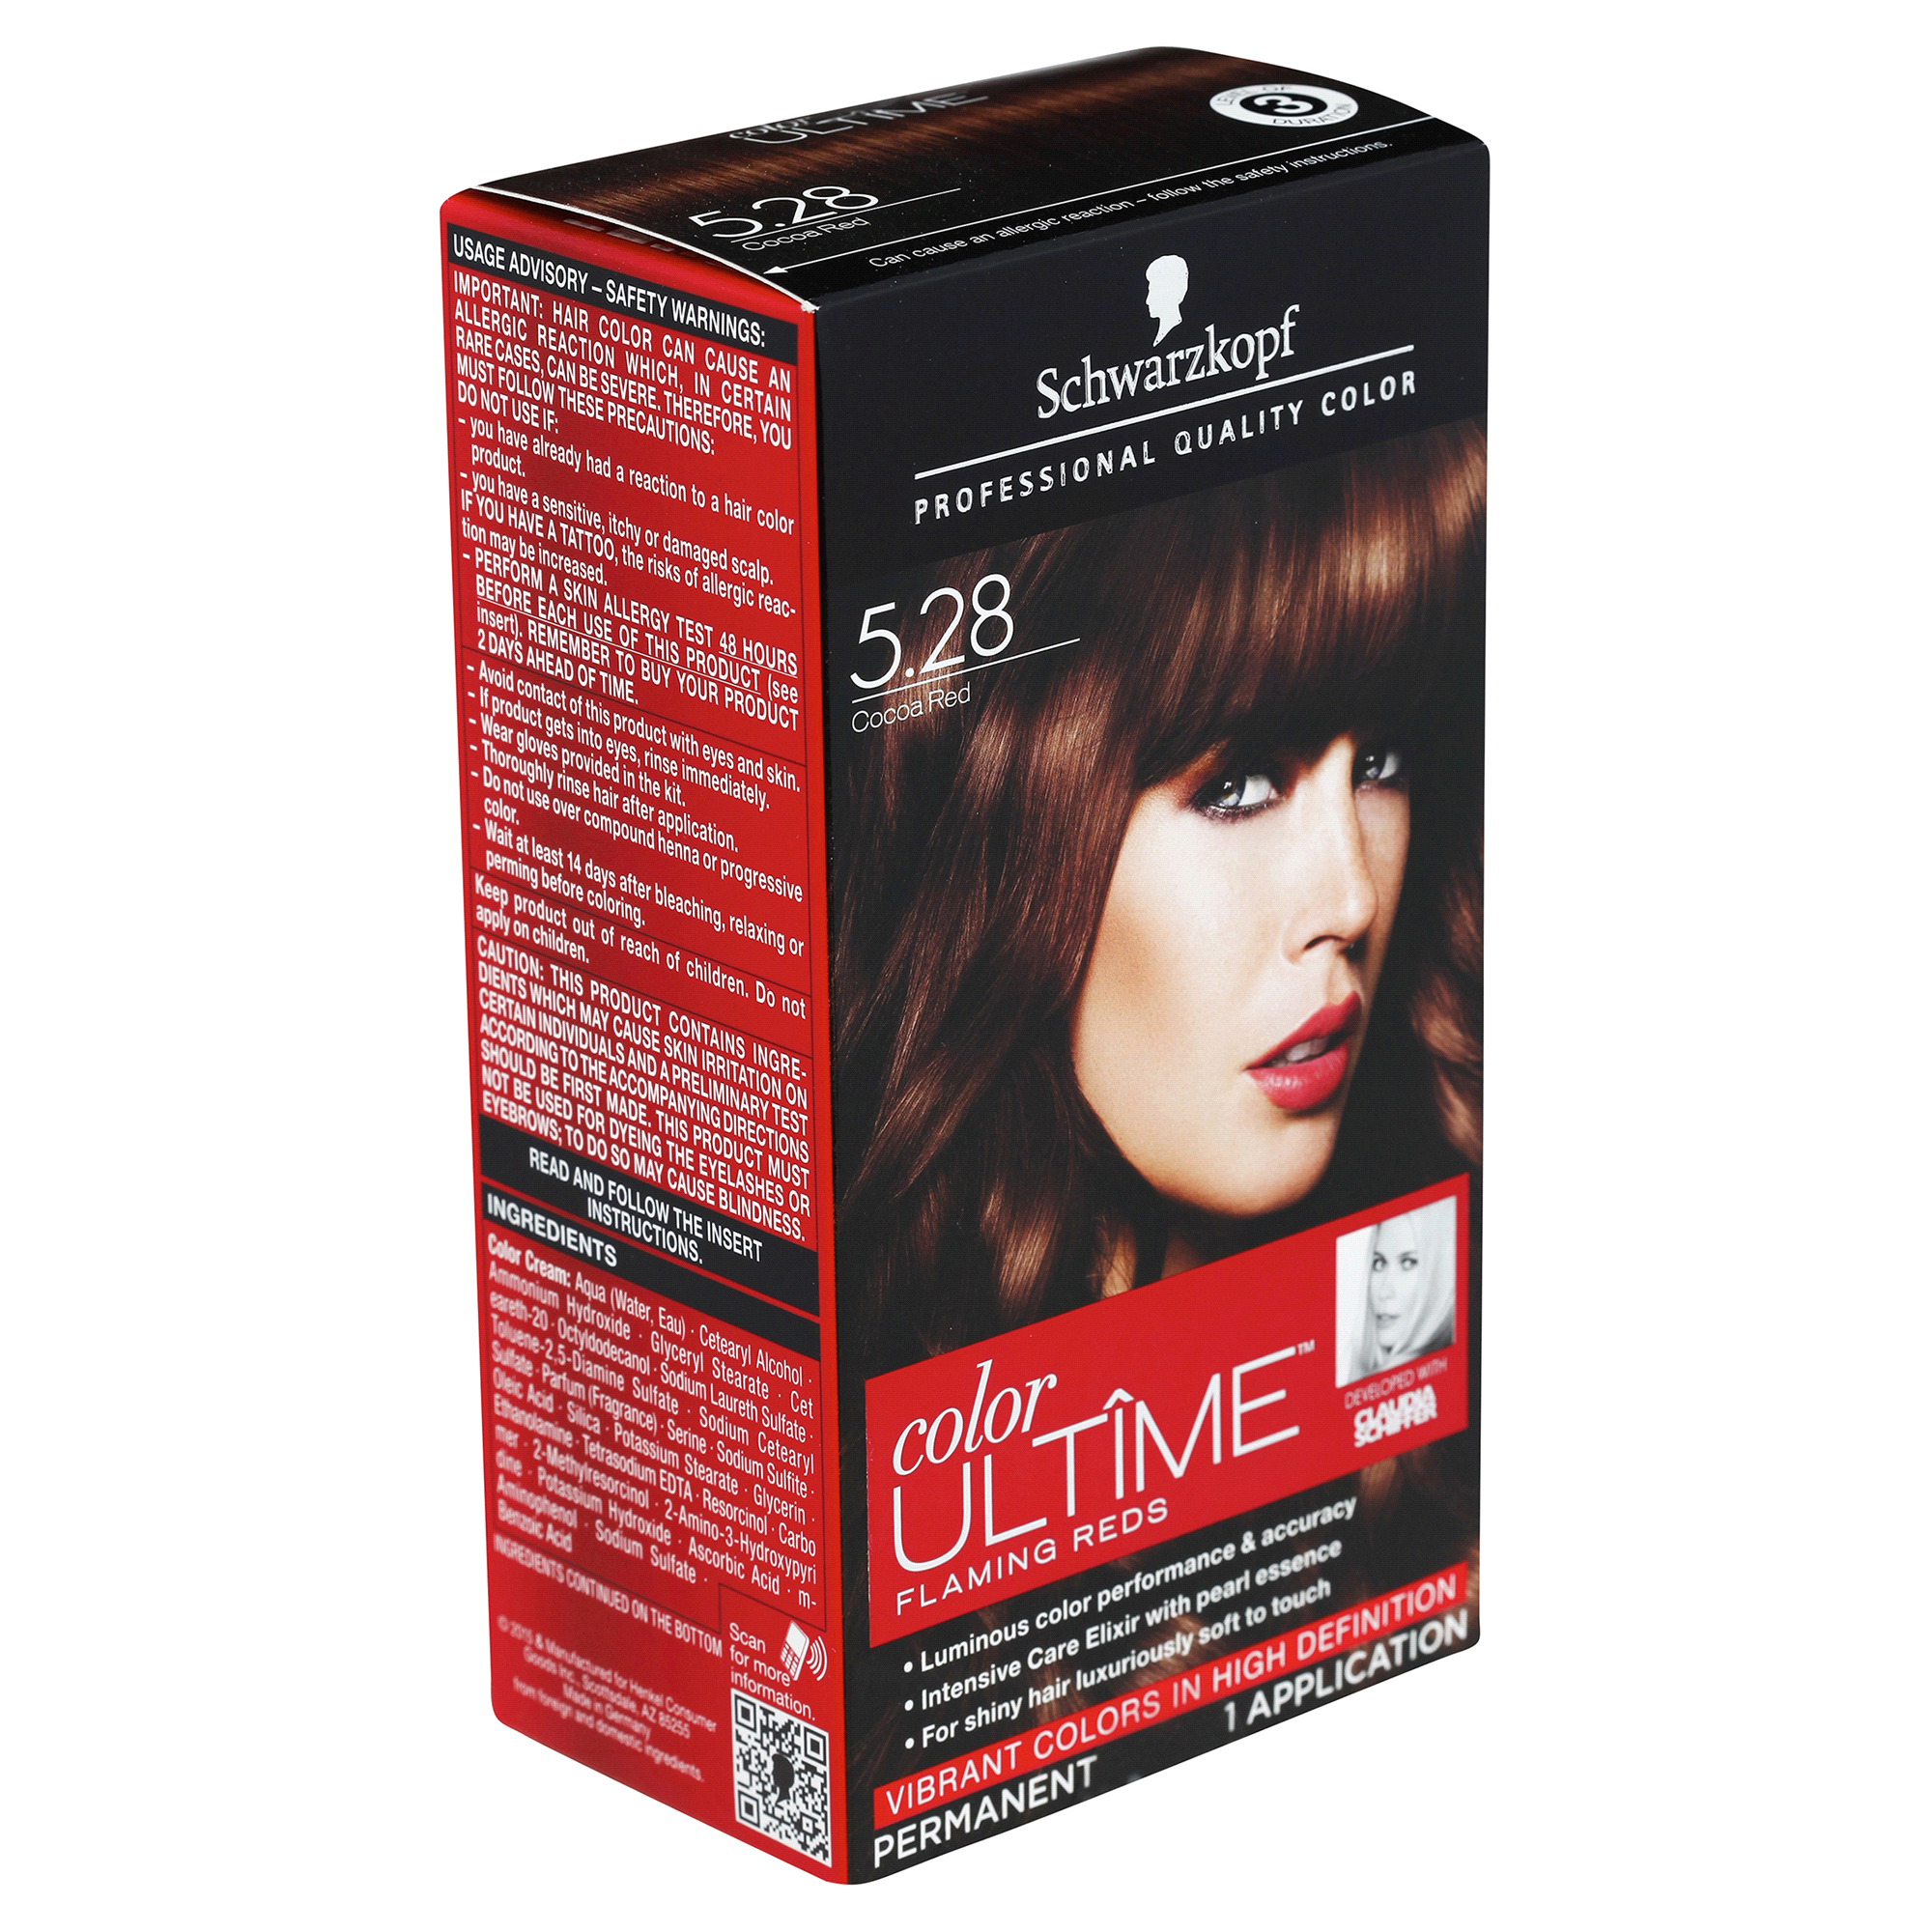 Schwarzkopf Color Ultime Flaming Reds Permanent Hair Color 528 Cocoa